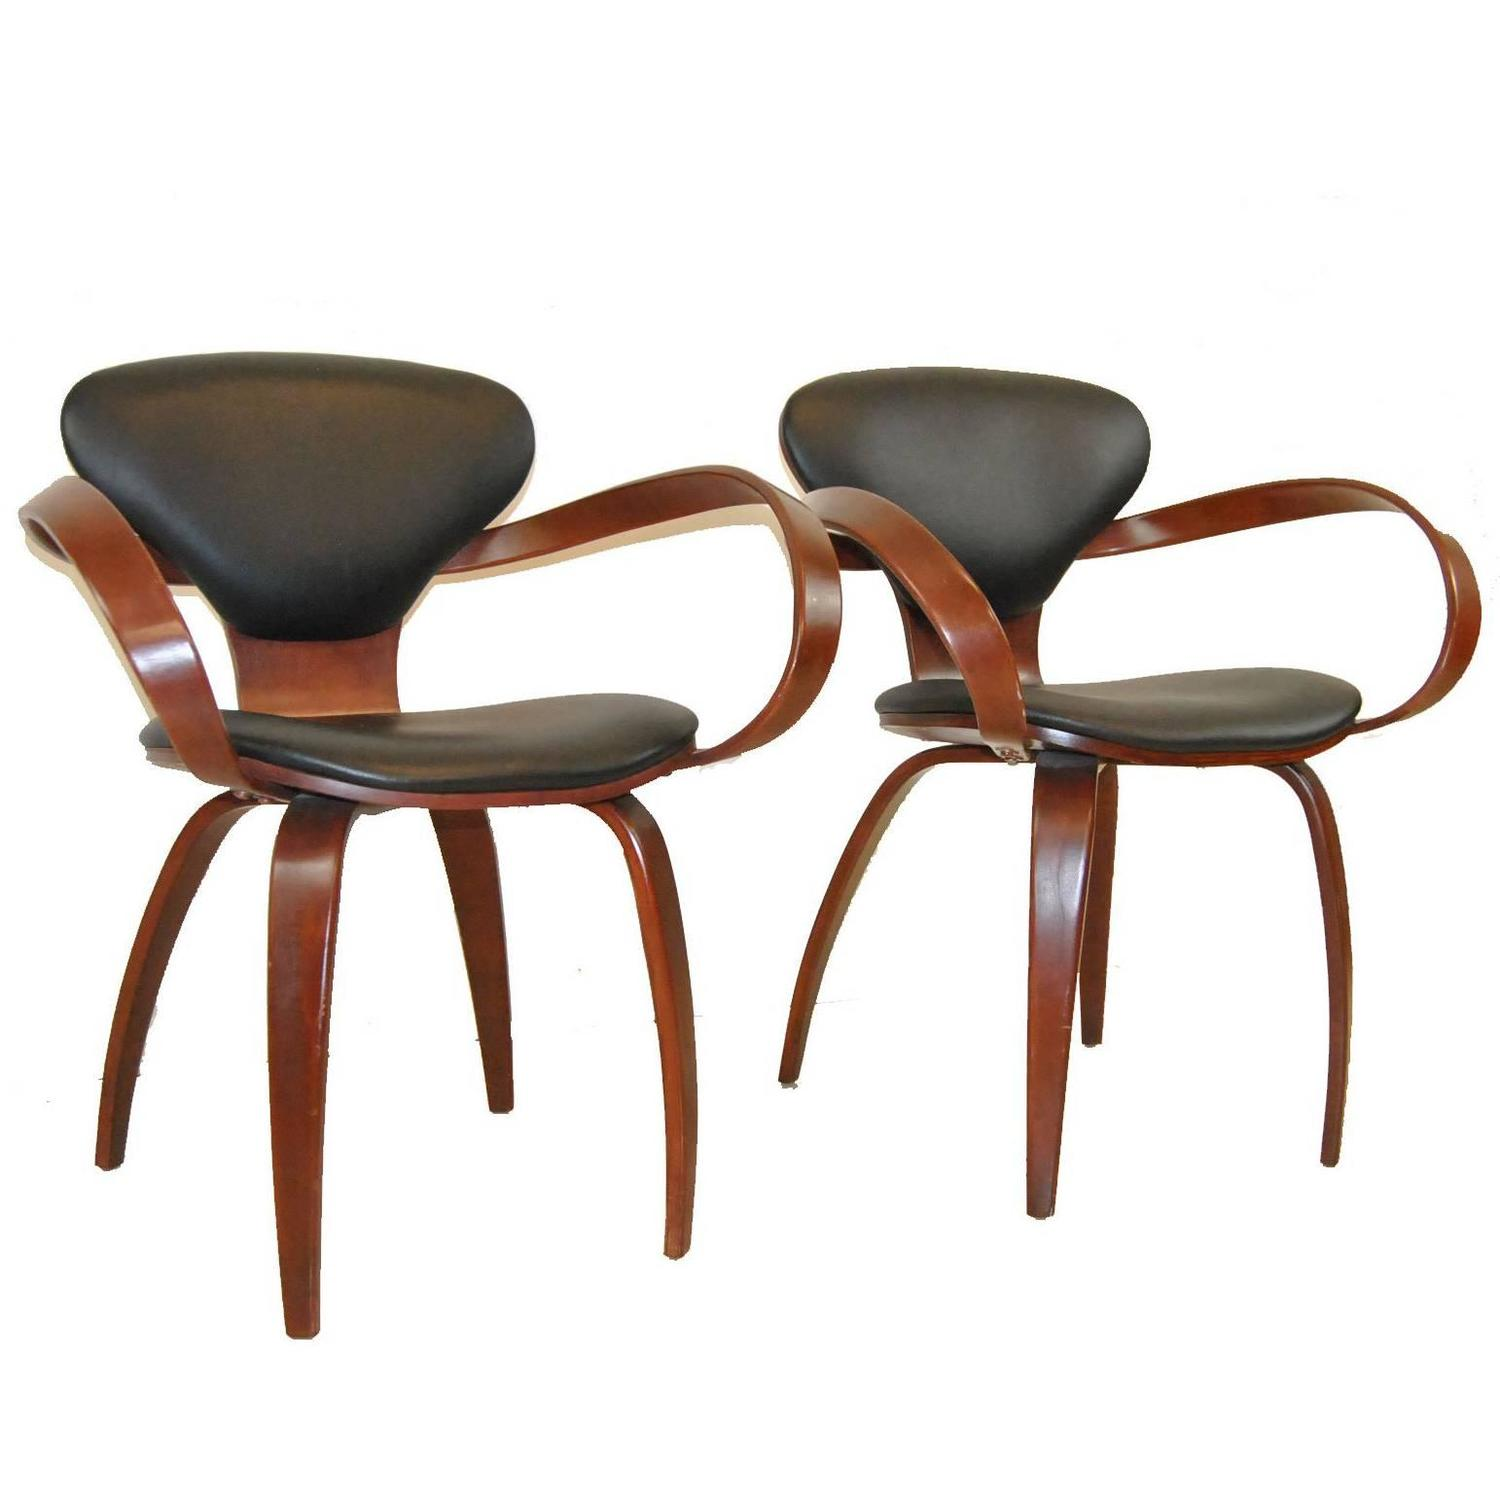 pair of mid century modern levinger chairs by goldman chair pretzel - Herman Miller Umhllen Schreibtisch